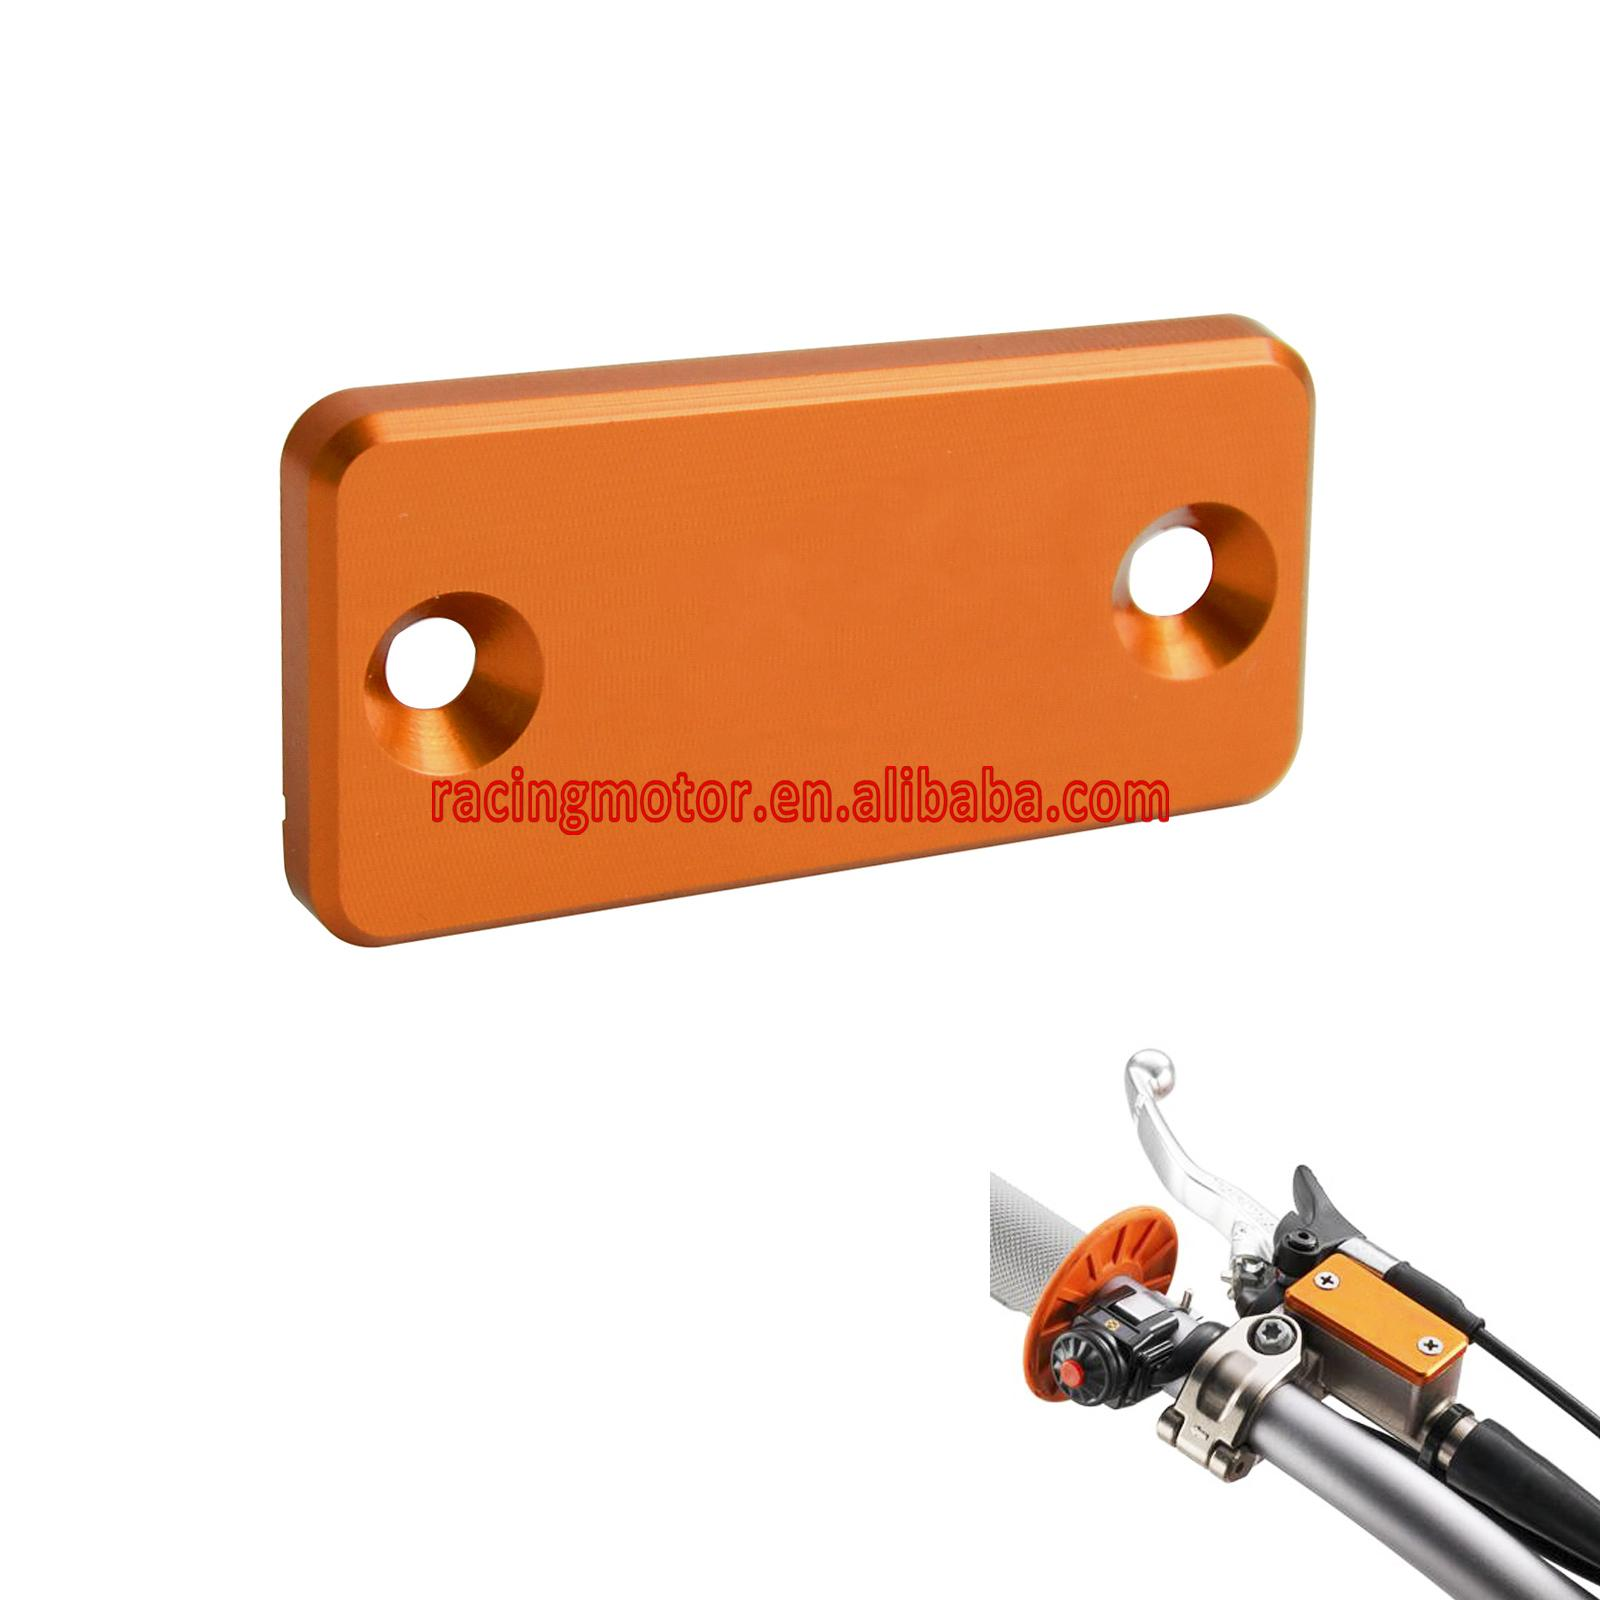 CNC Clutch Master Cylinder Reservoir Cover For KTM 690 SMC SMR Duke Enduro R 1050 1190 Adventure 1290 Super Adventure mtkracing cnc aluminum brake clutch levers set short adjustable lever for ktm adventure 1050 690 duke smc smcr 690 enduro r